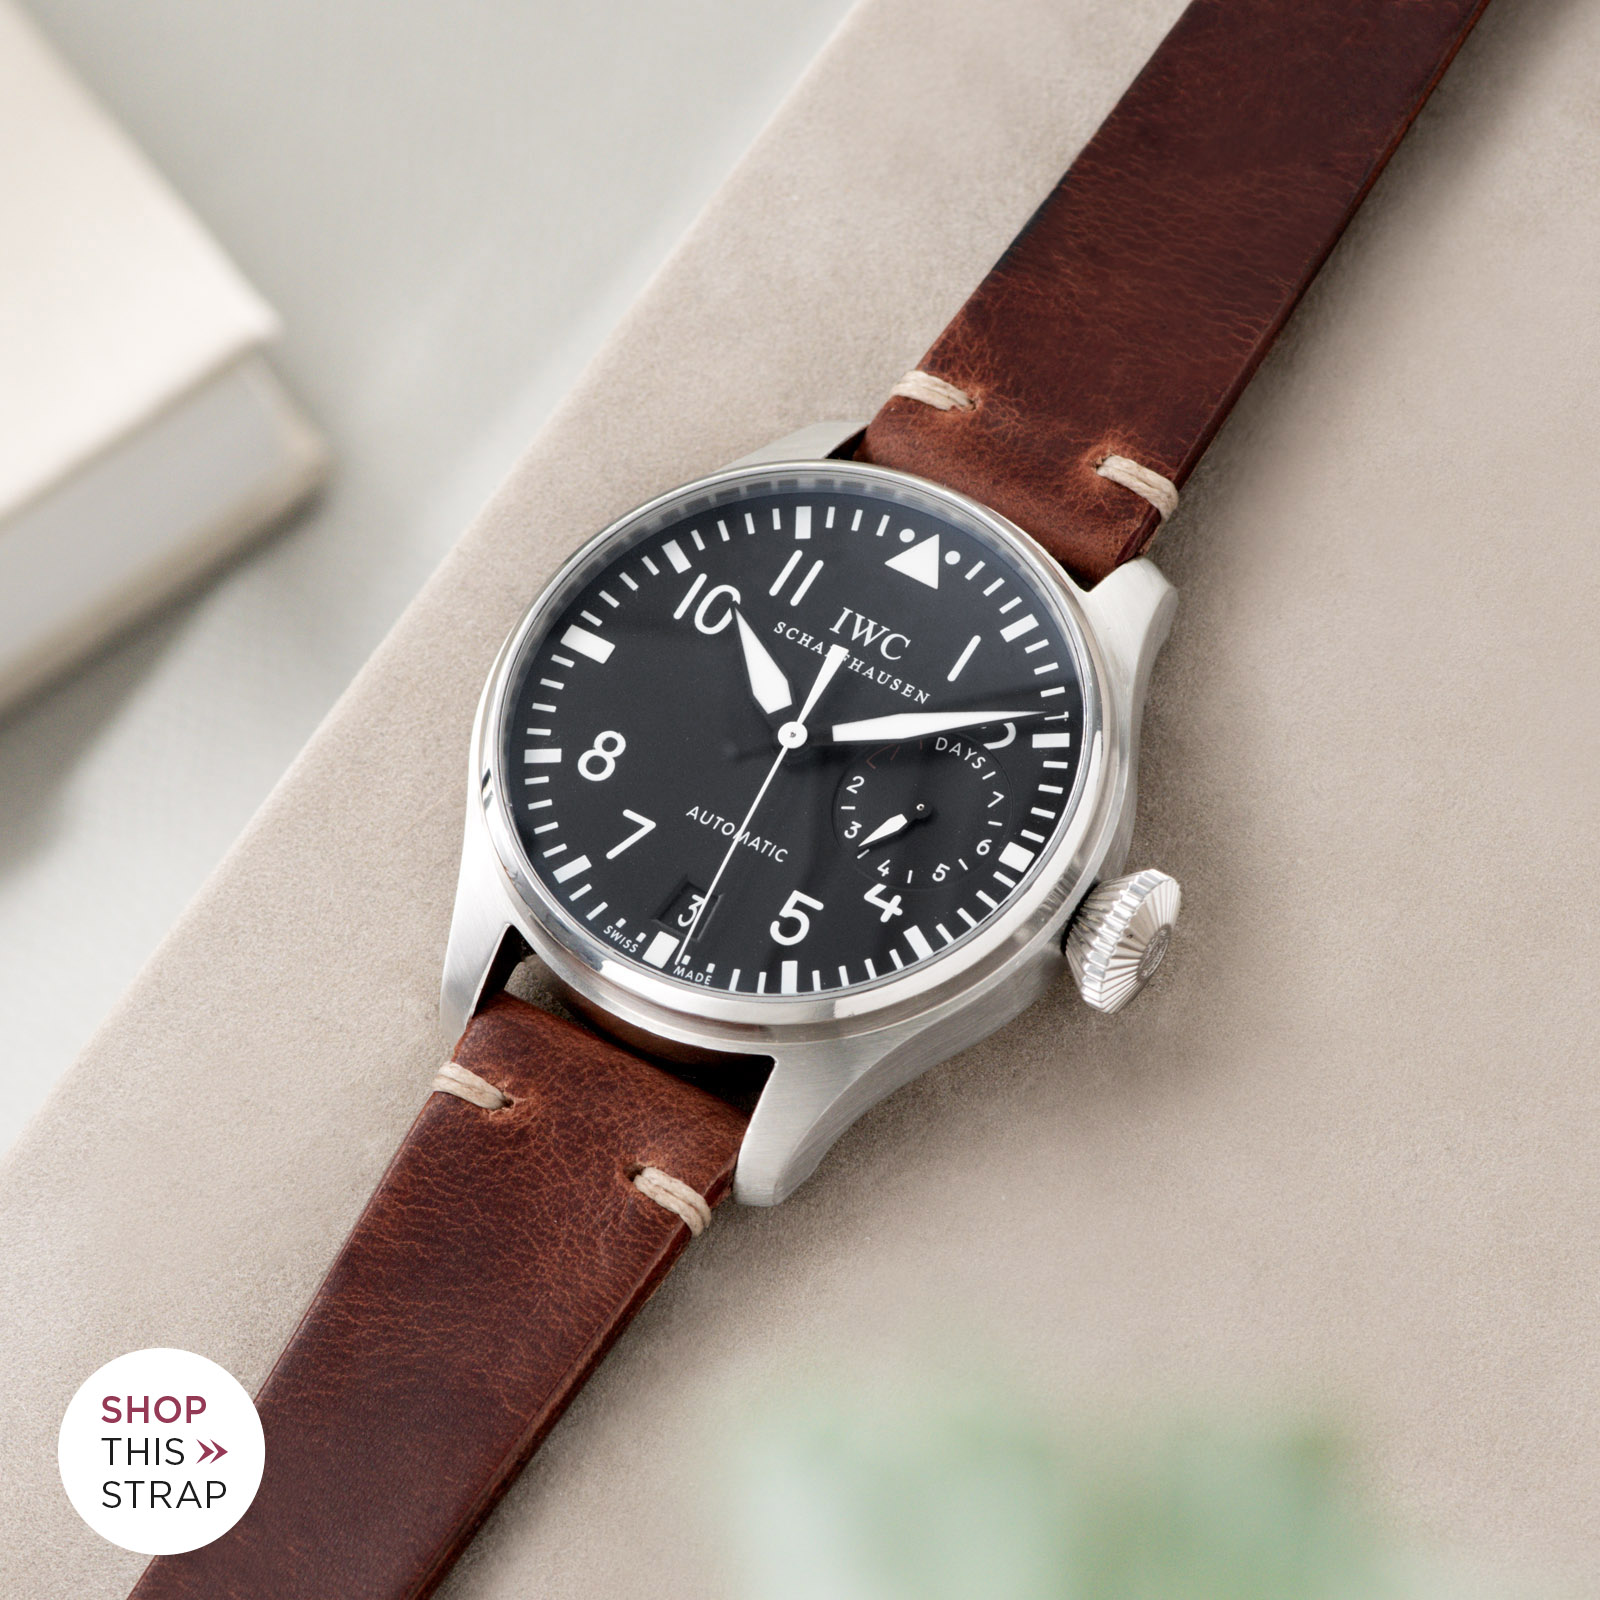 Bulang and Sons_Strap Guide_IWC Big Pilot ref IW5004_Siena Brown Leather Watch Strap